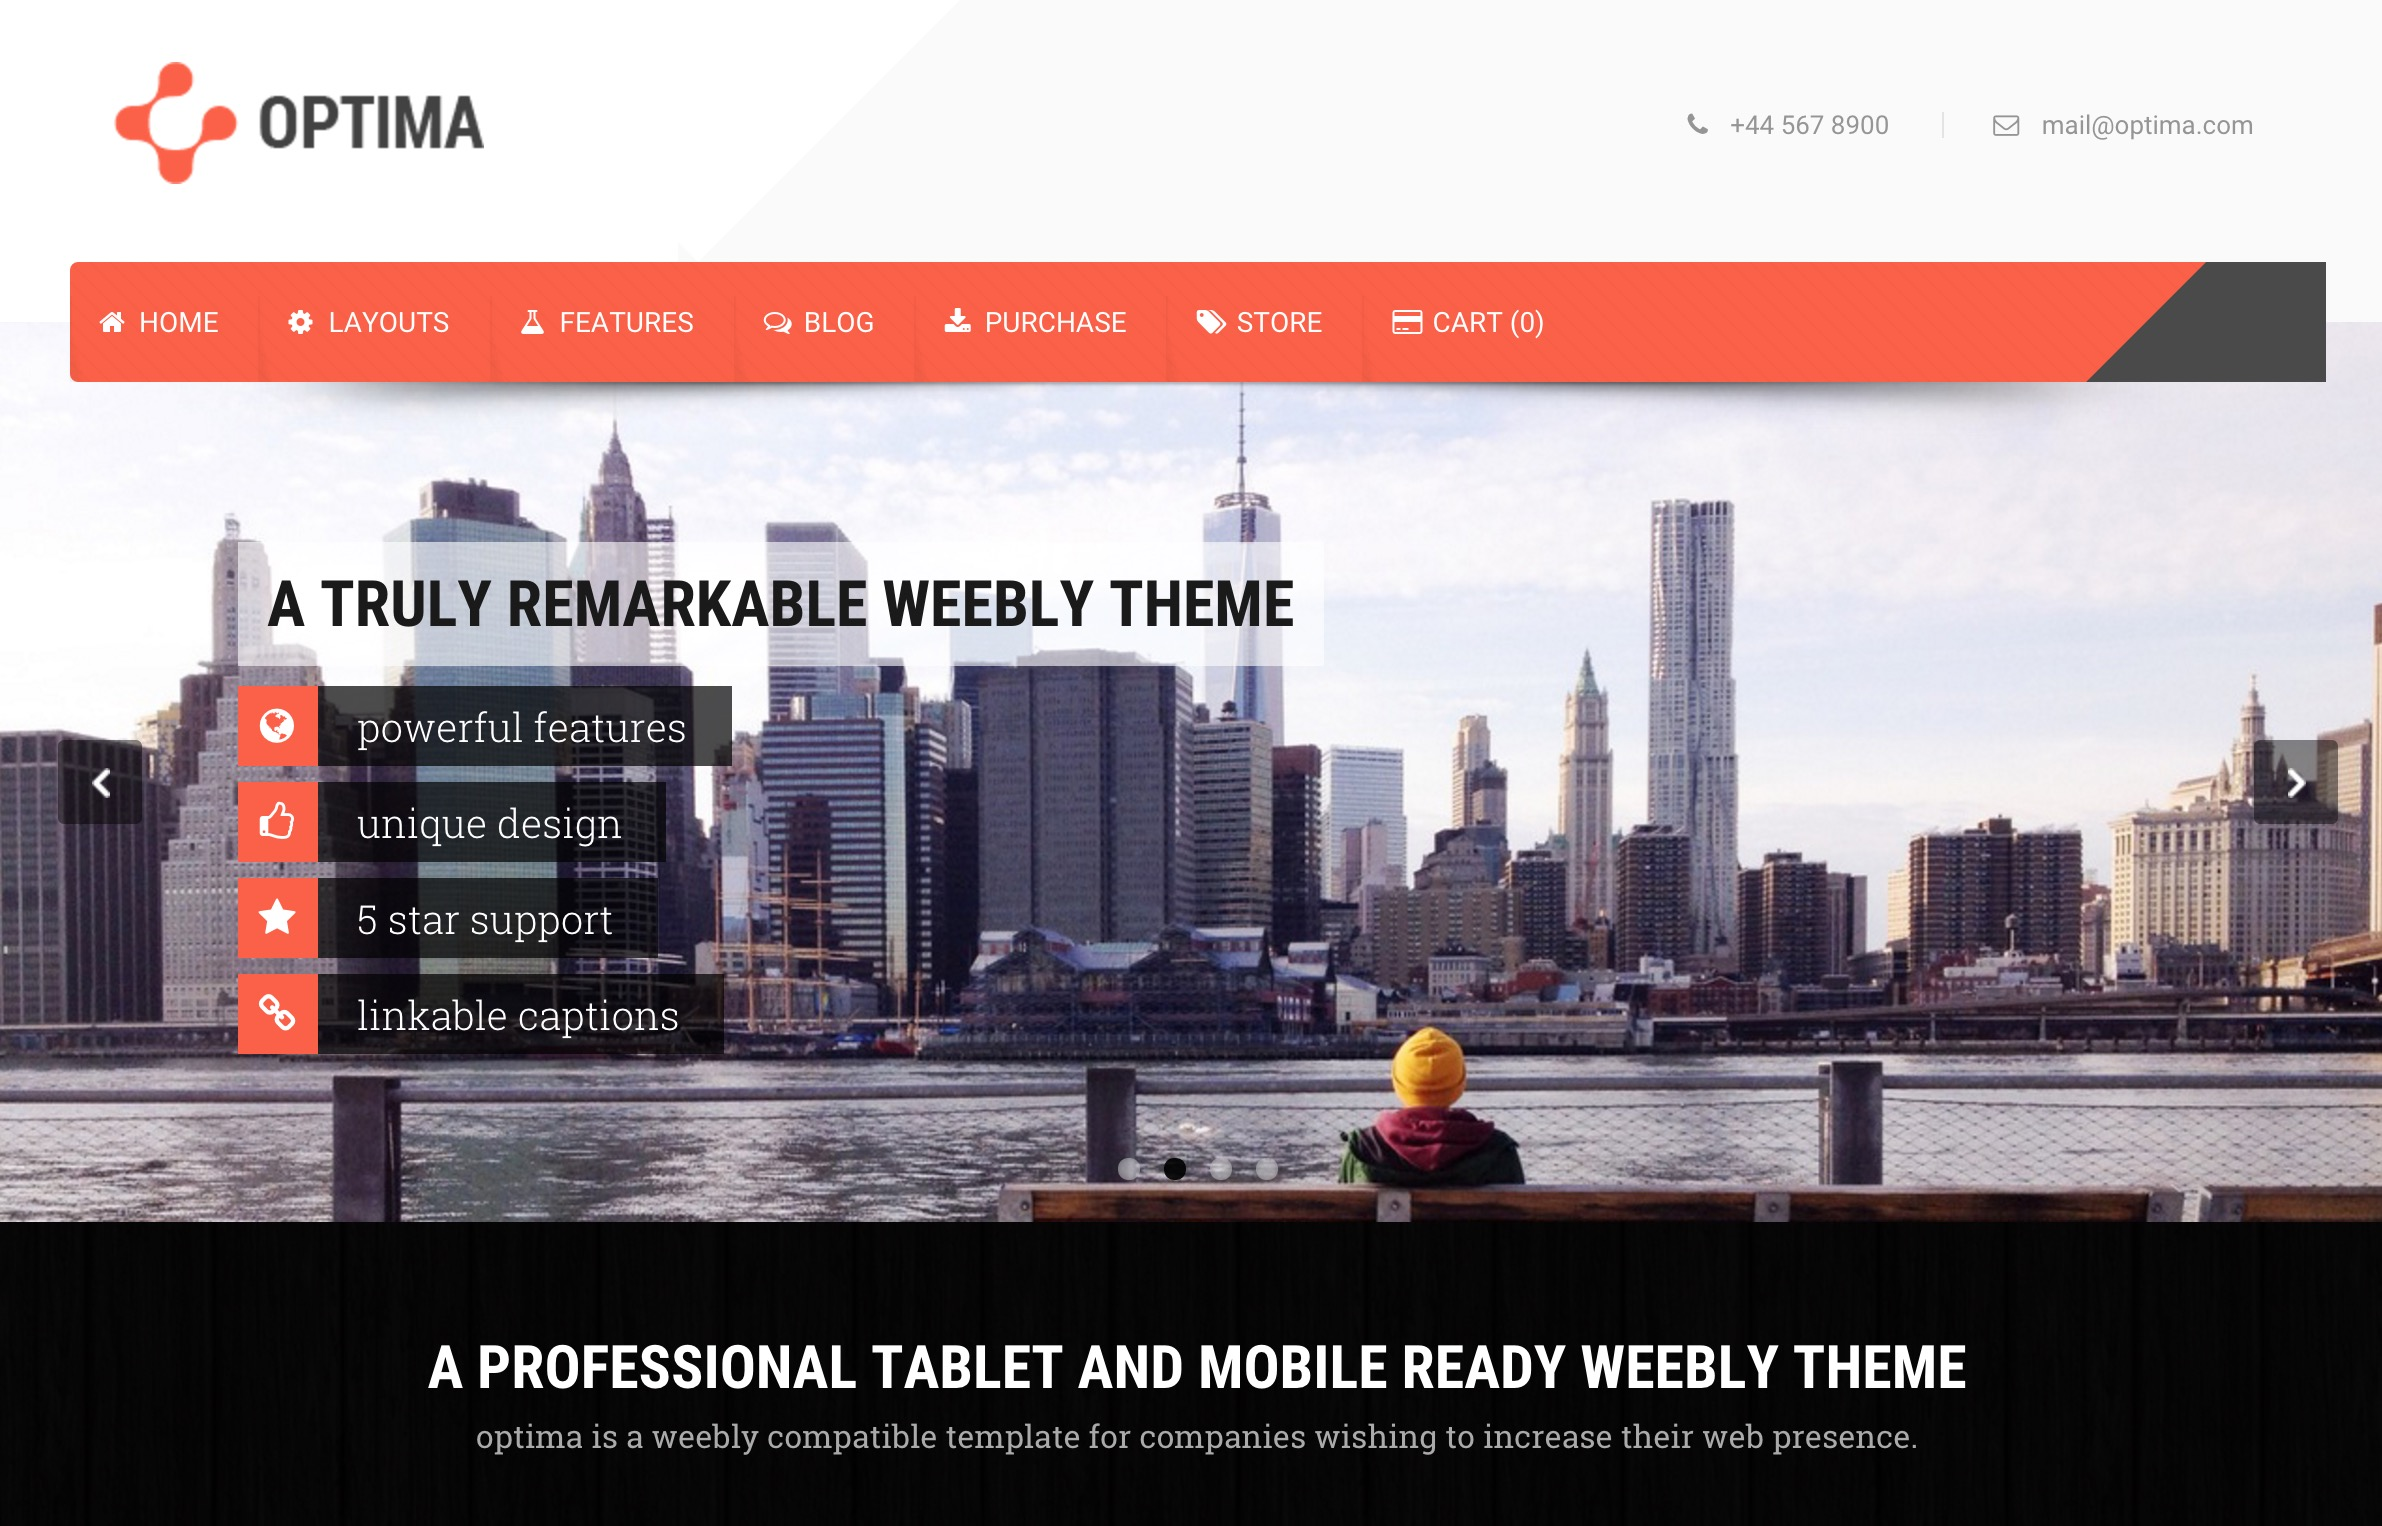 free weebly themes and templates - 63 weebly templates and designs for advanced websites